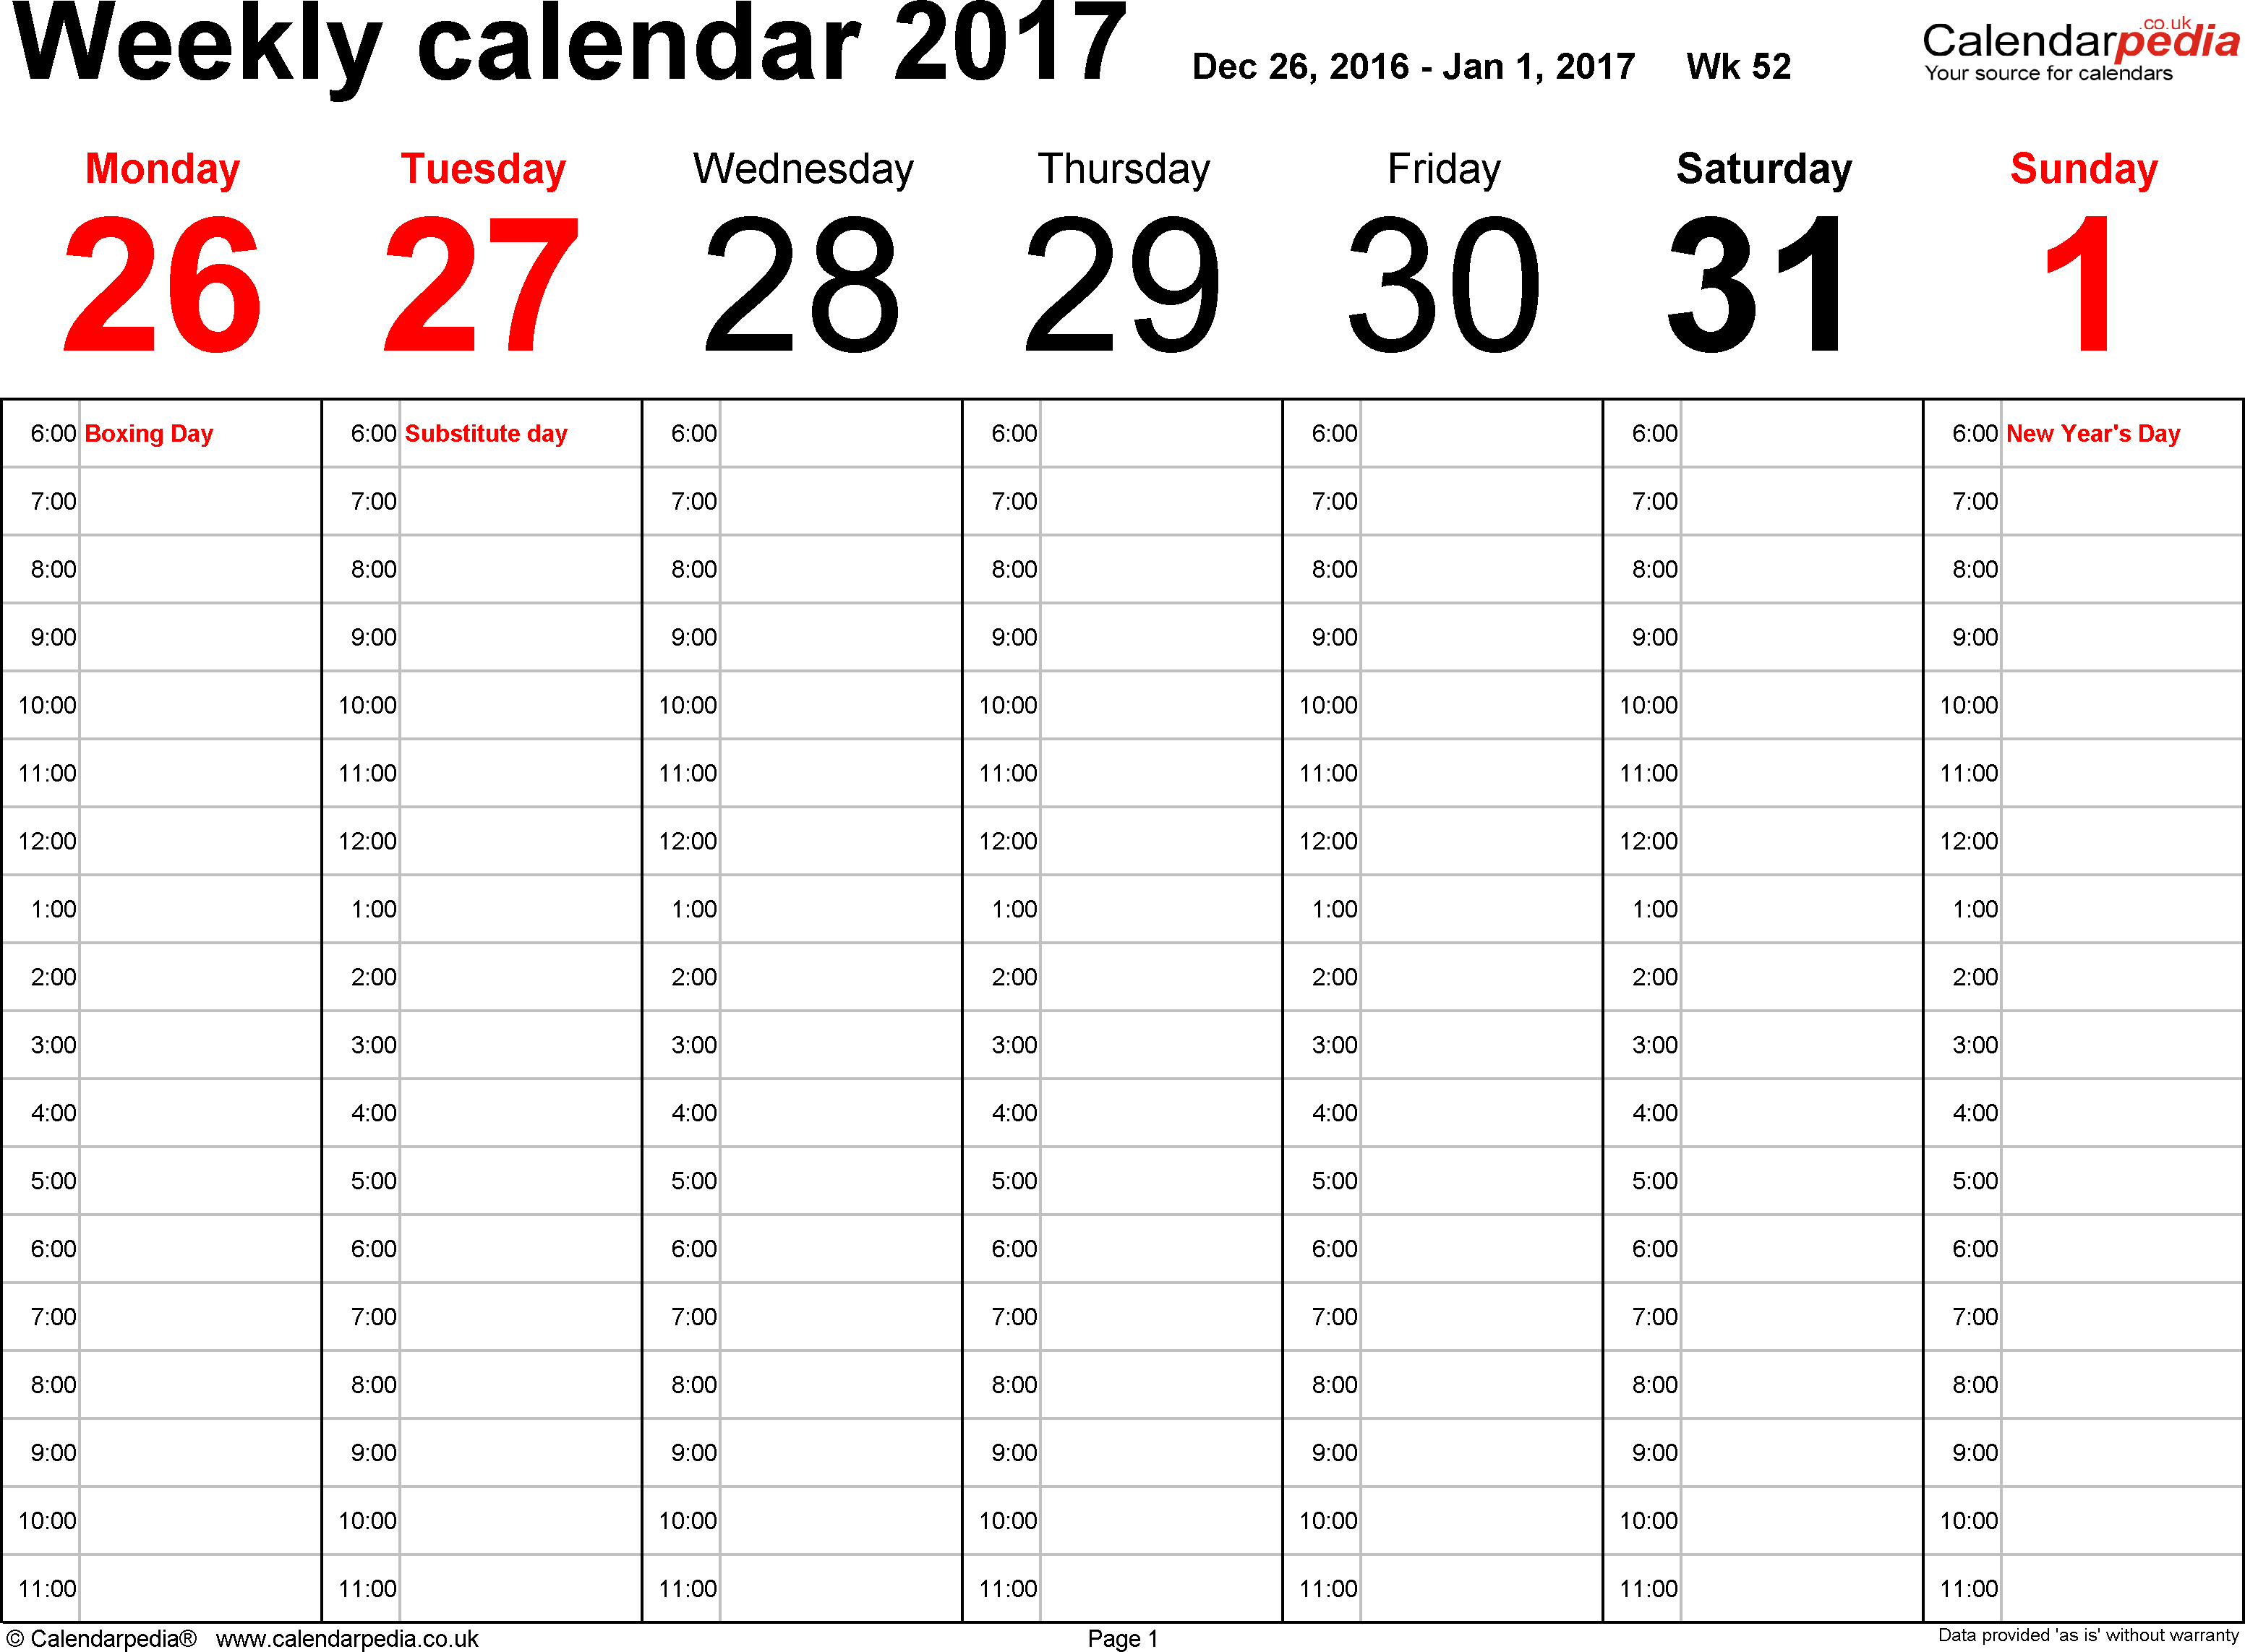 Weekly calendar 2017 UK - free printable templates for Word